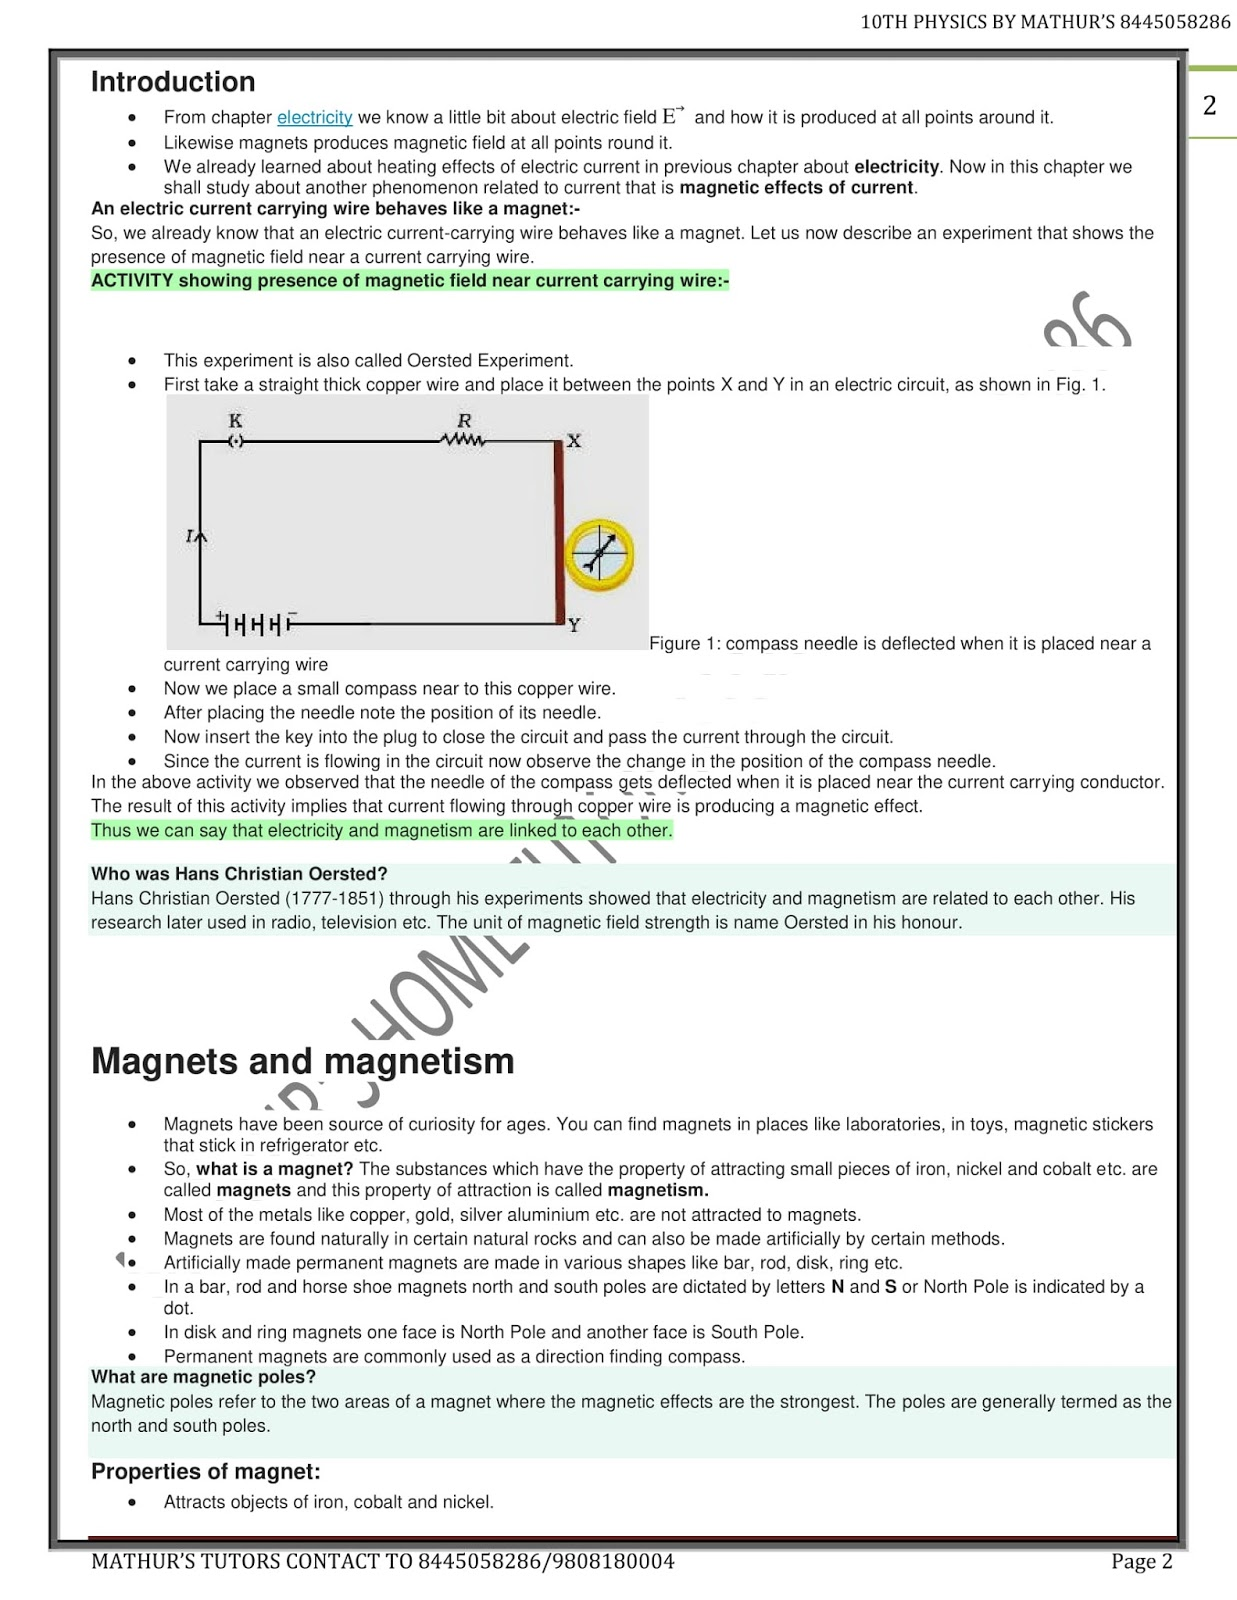 Class 10 Physics Notes MAGNETIC EFFECT OF ELECTRIC CURRENT